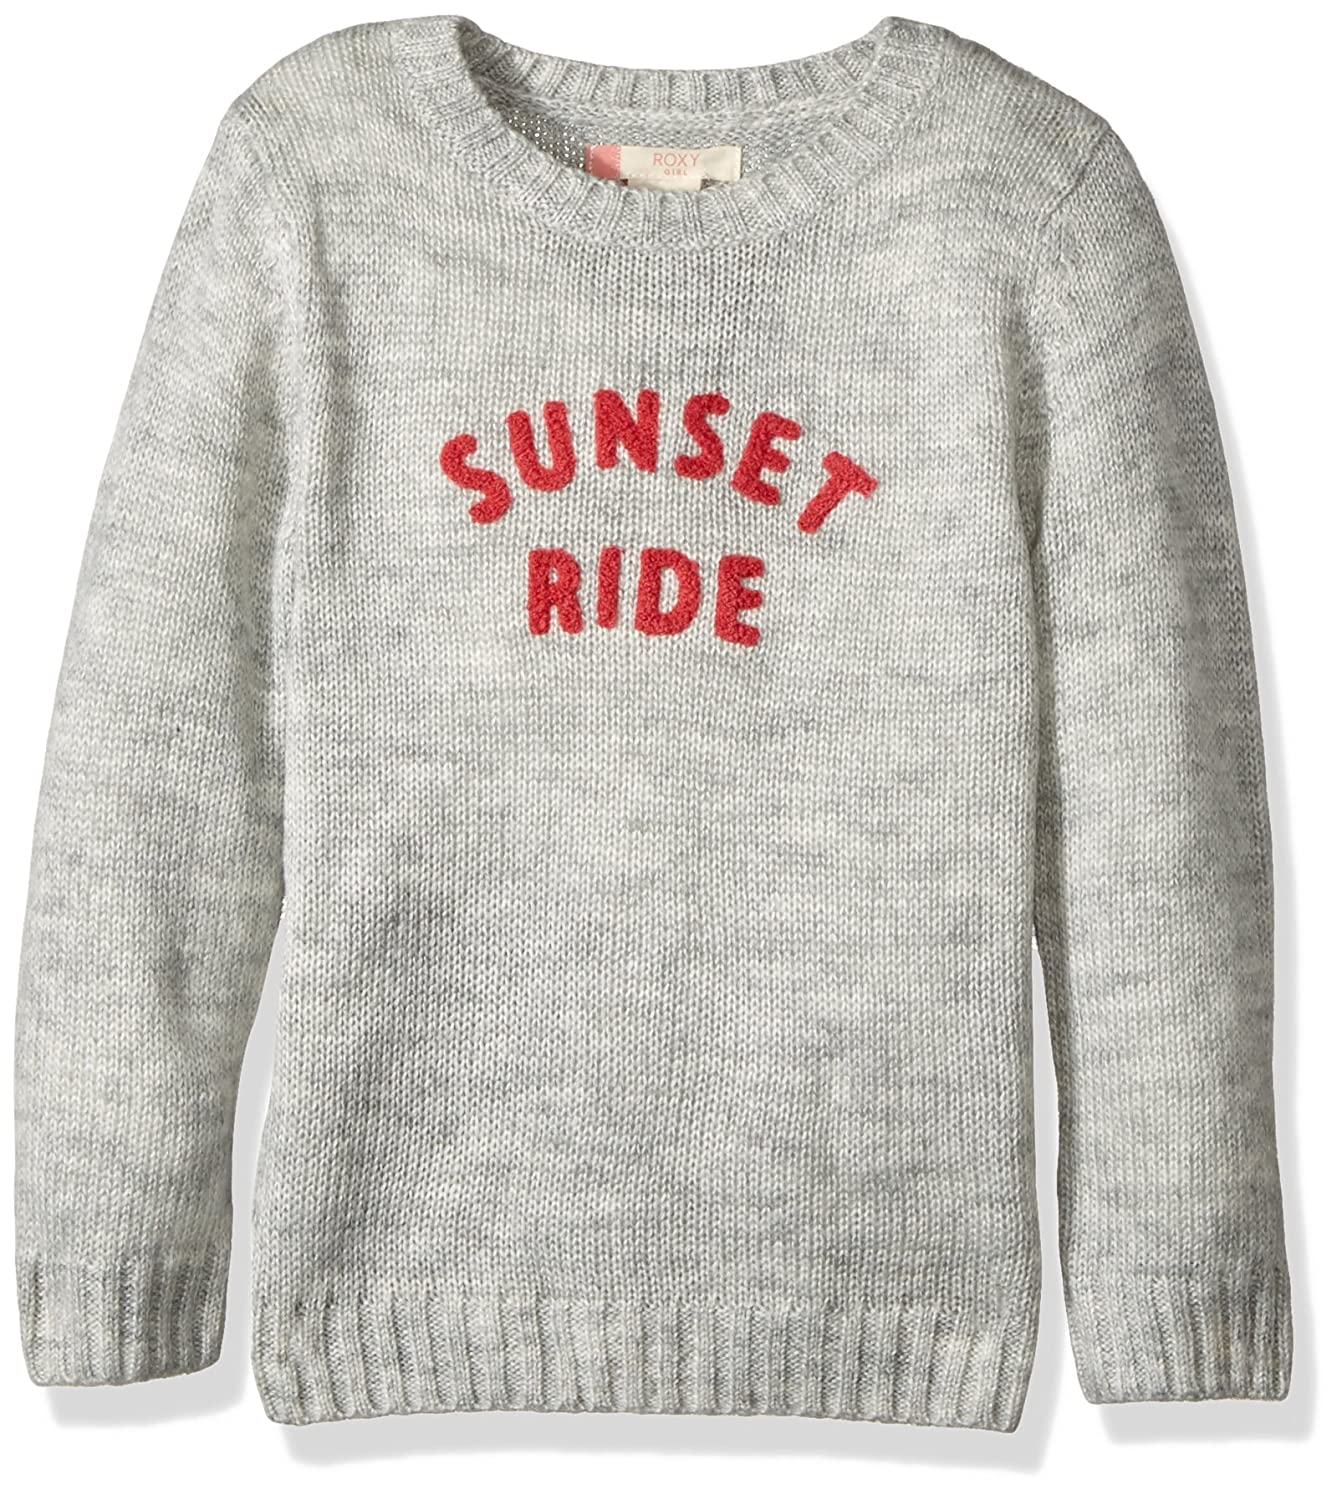 Roxy girls Little Girls Daisy Tales Sweater Roxy Children's Apparel ERLSW03017-SGRH